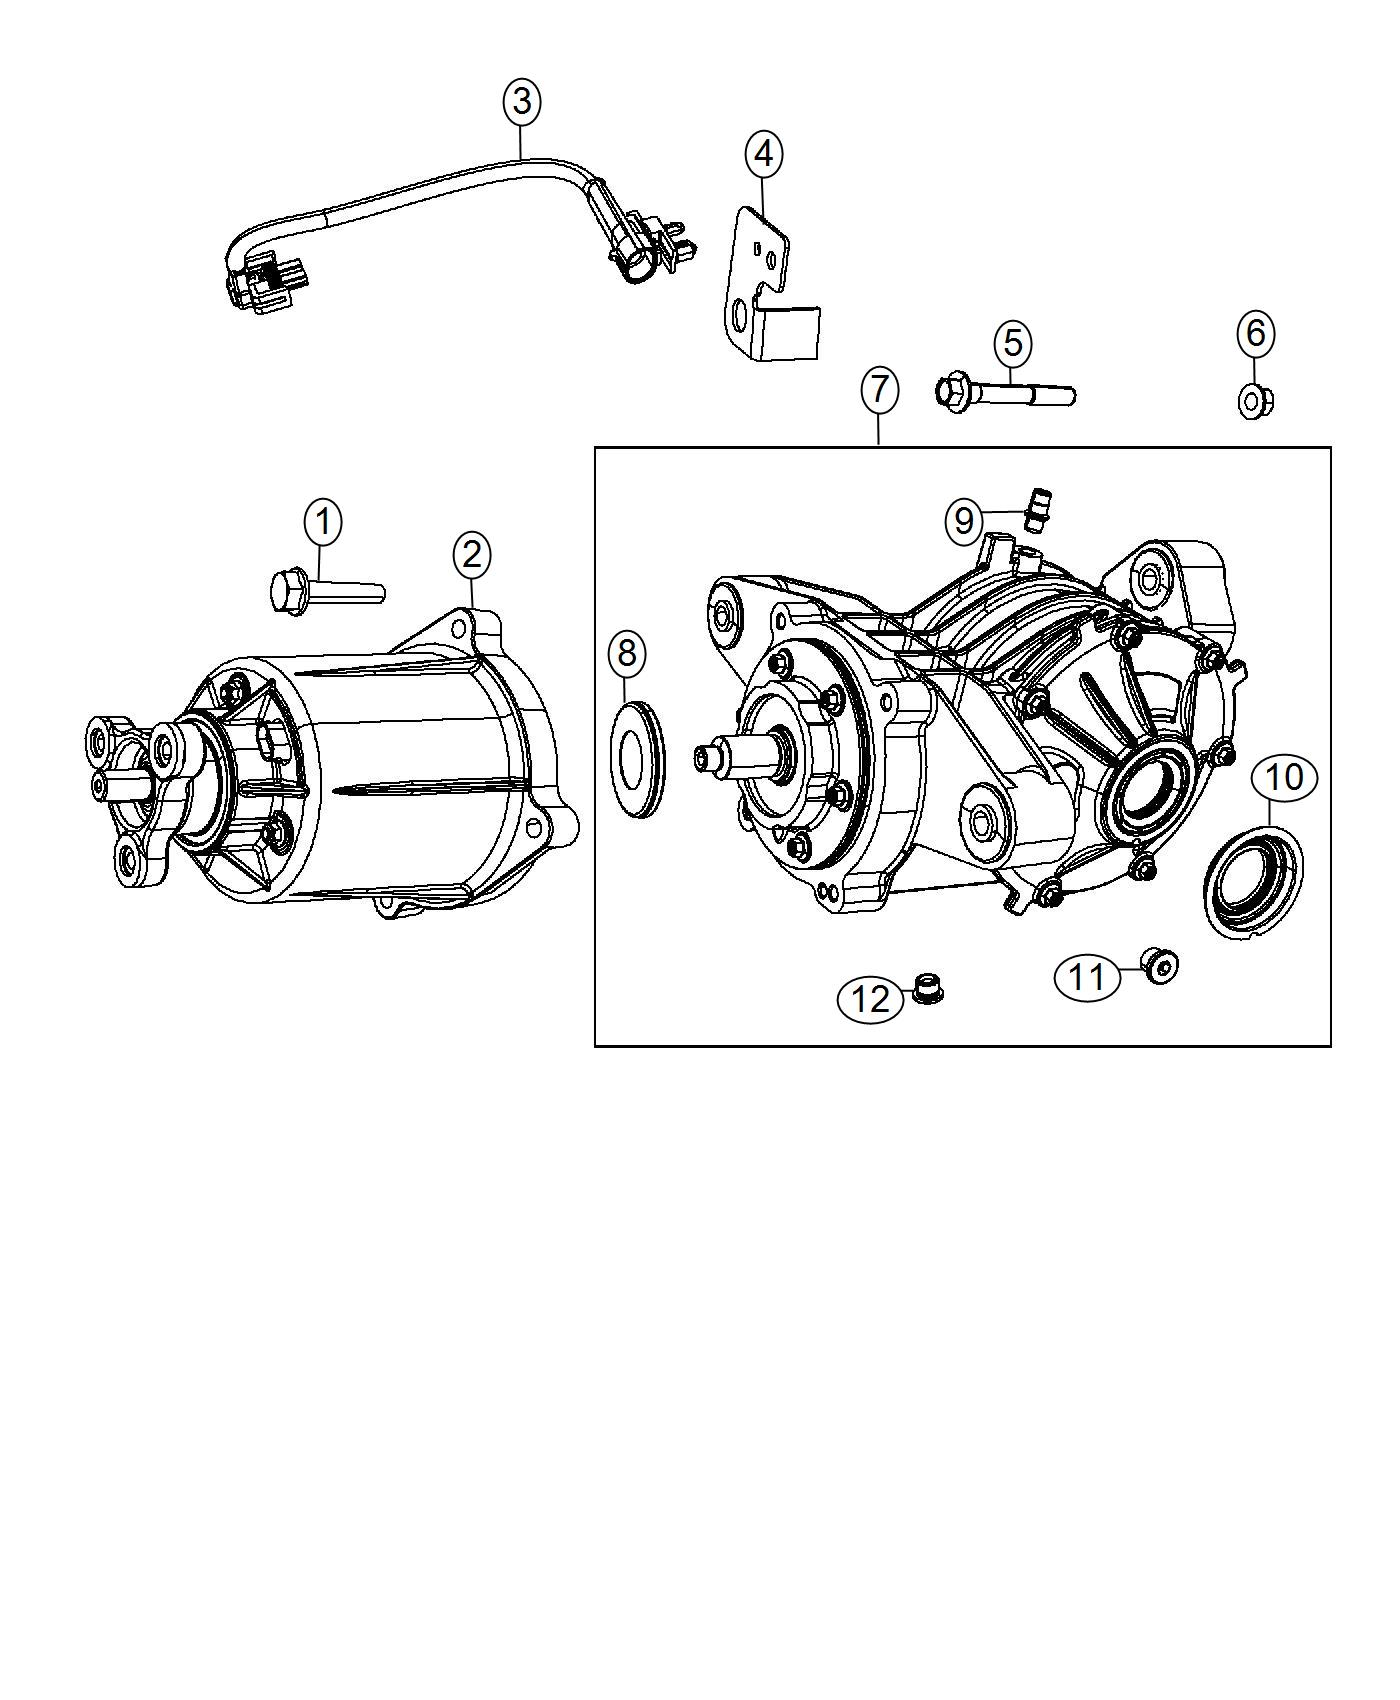 Axle Assembly. Diagram